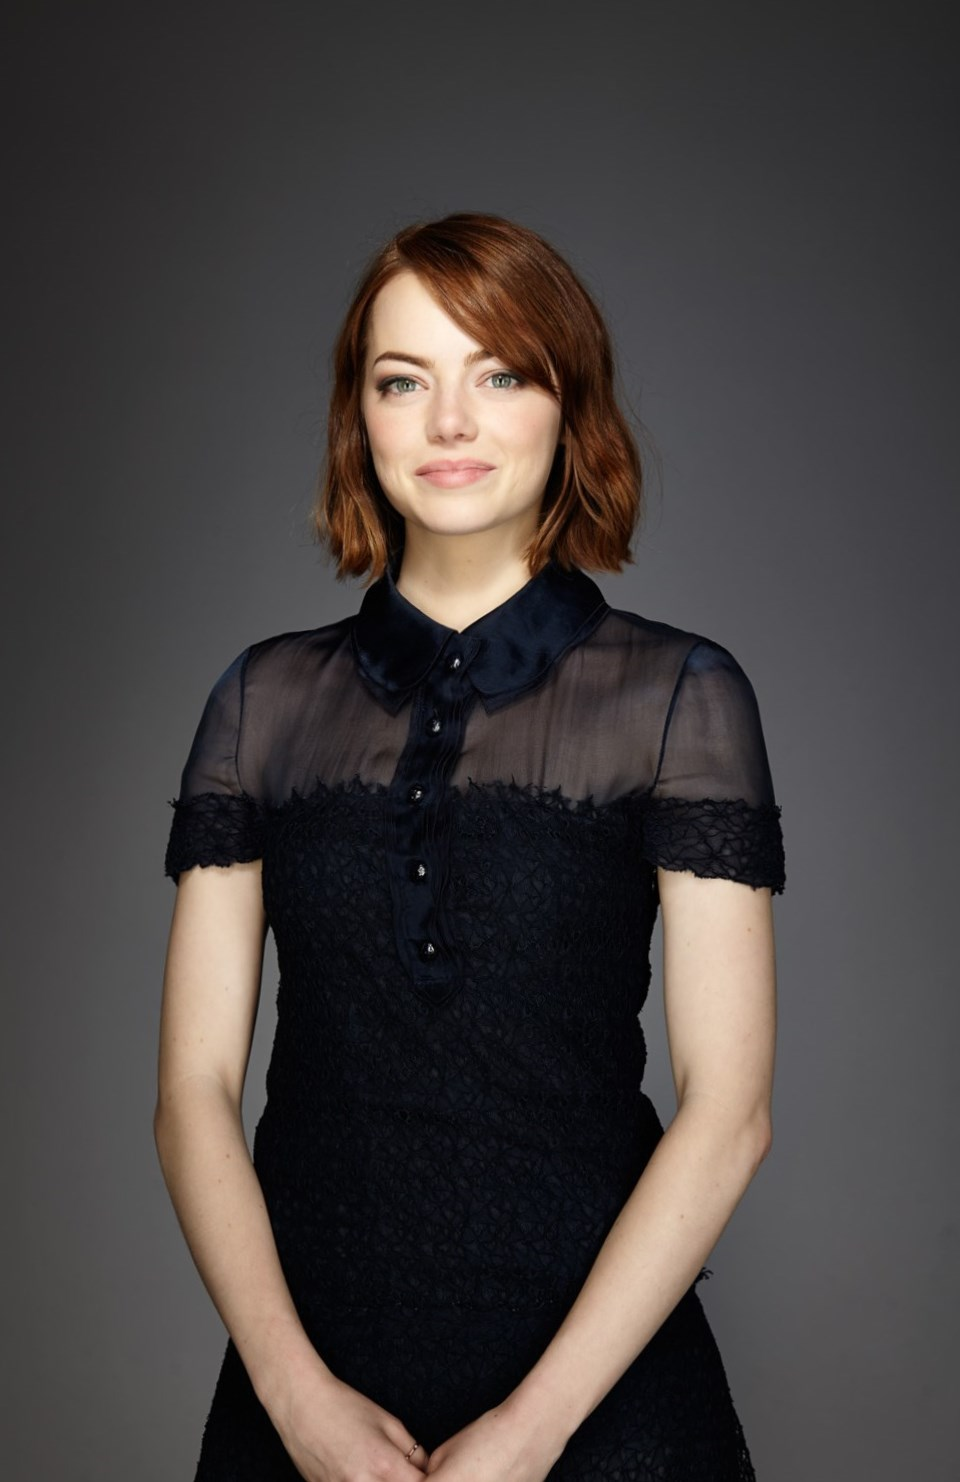 Emma Stone weight, height and age. Body measurements! Emma Stone